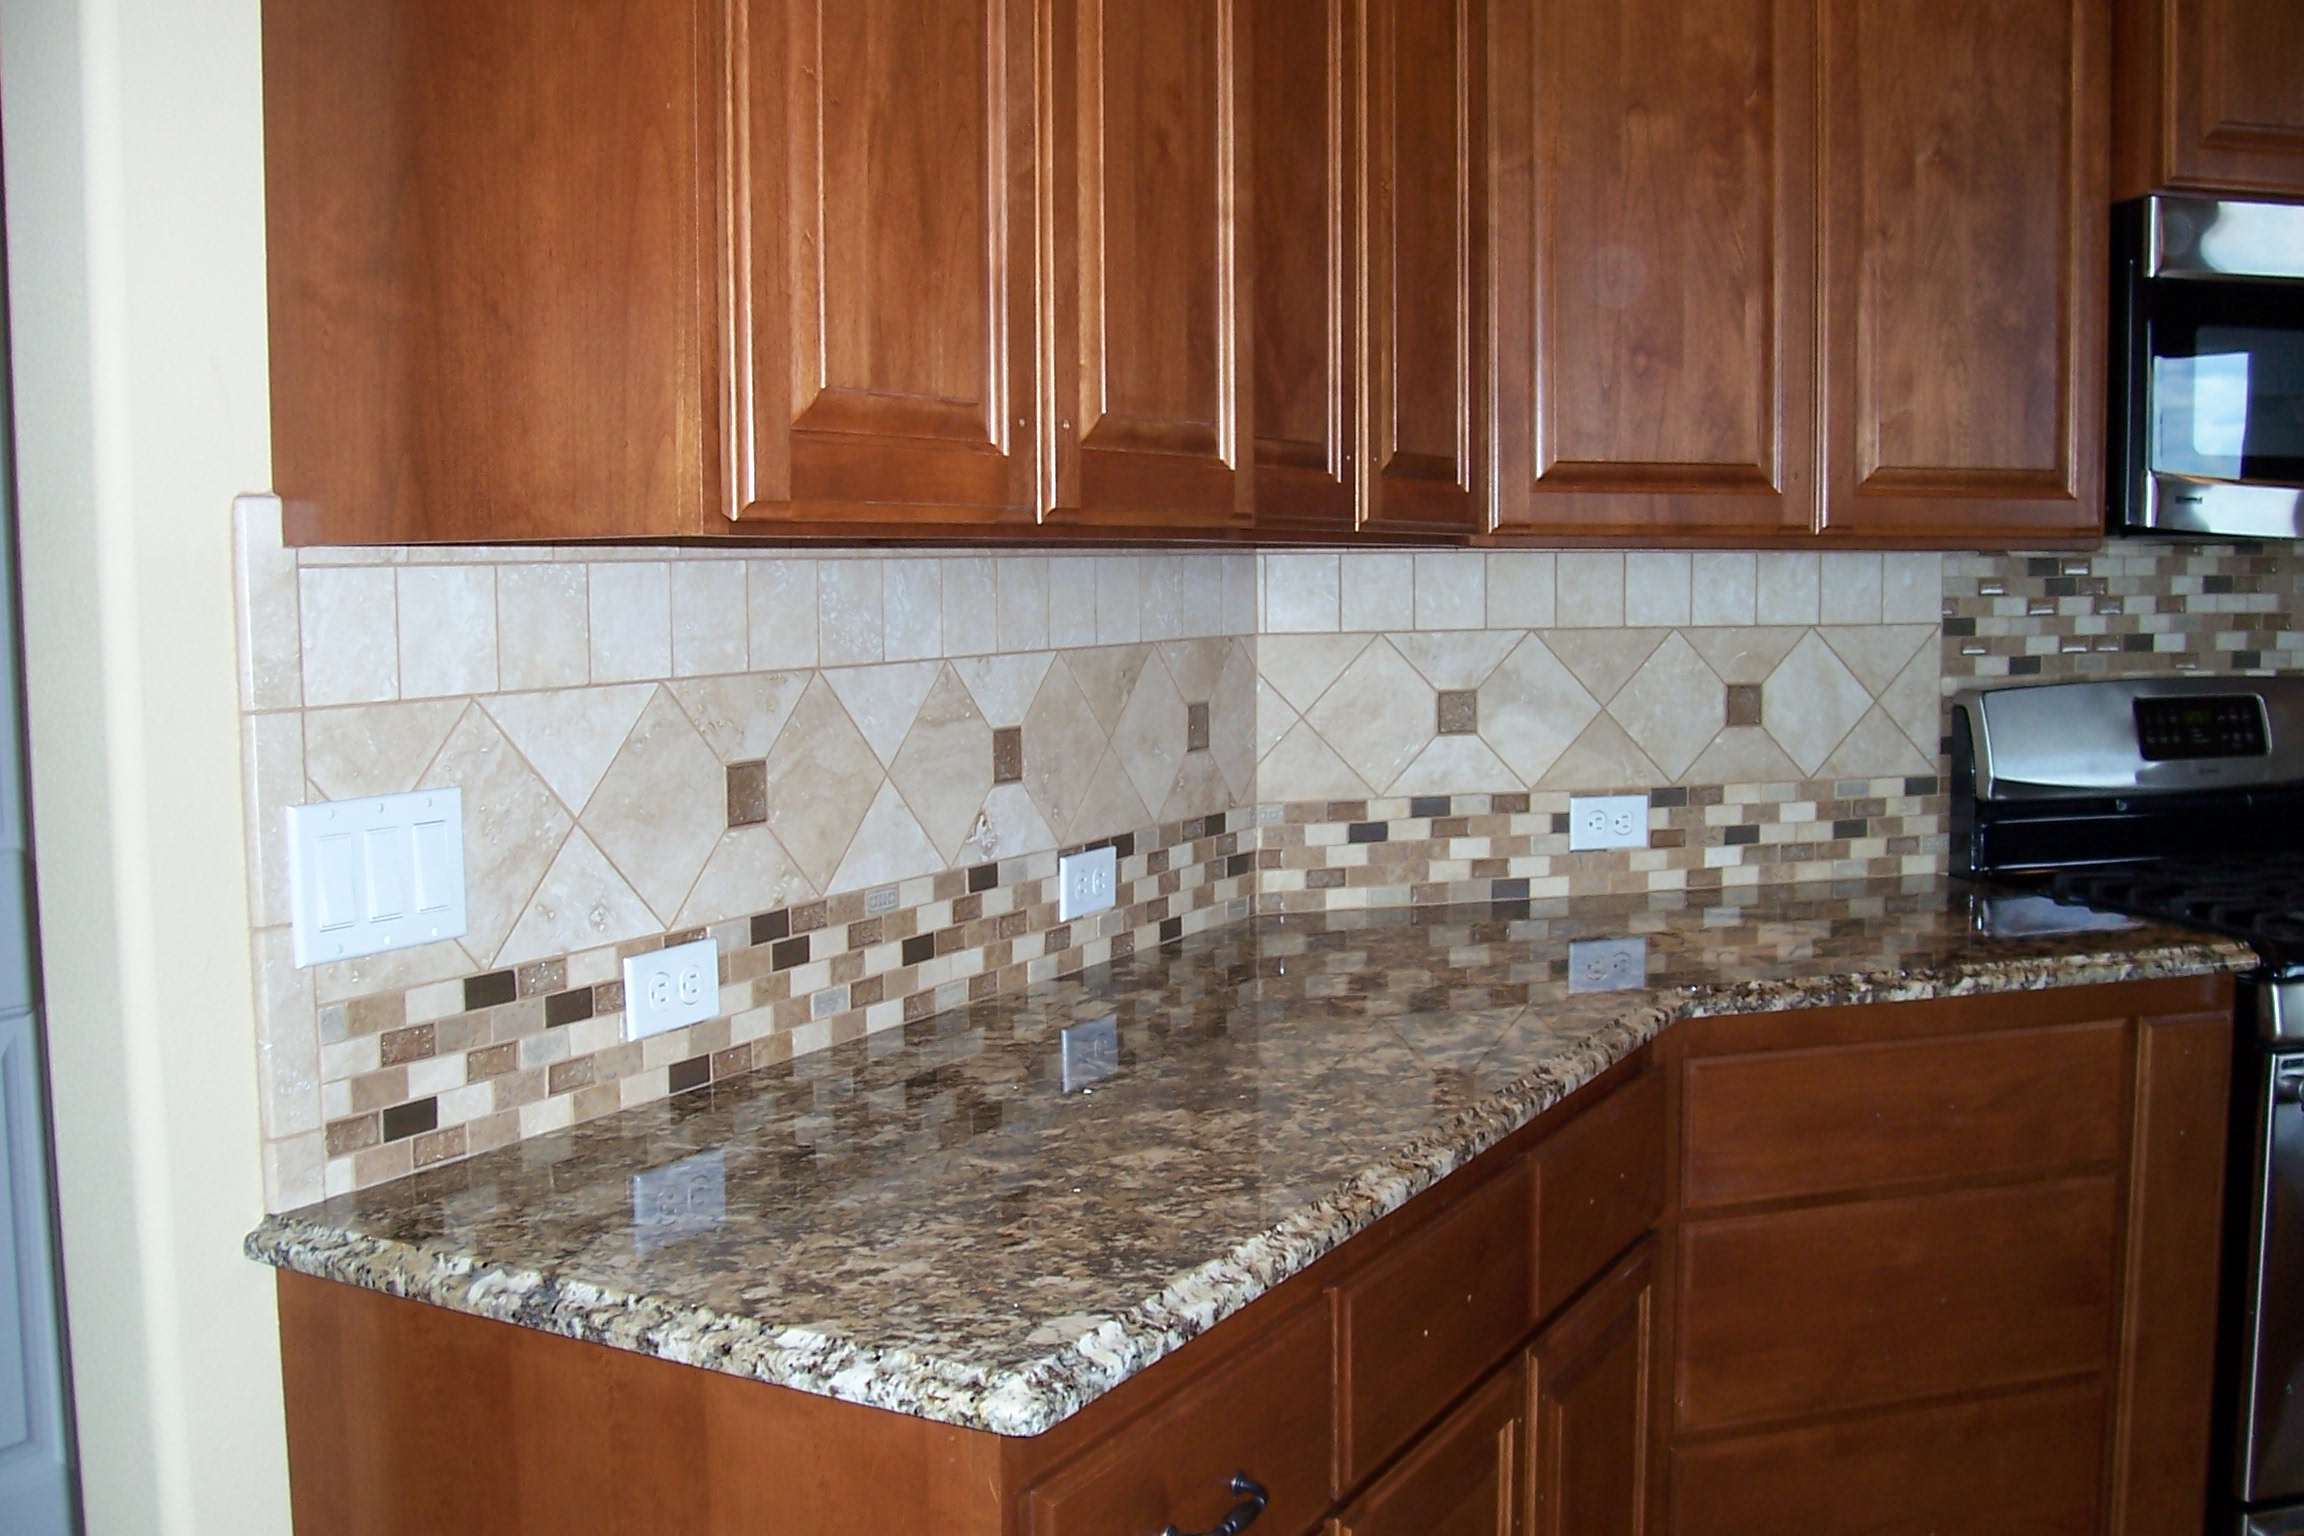 301 moved permanently Design kitchen backsplash glass tiles